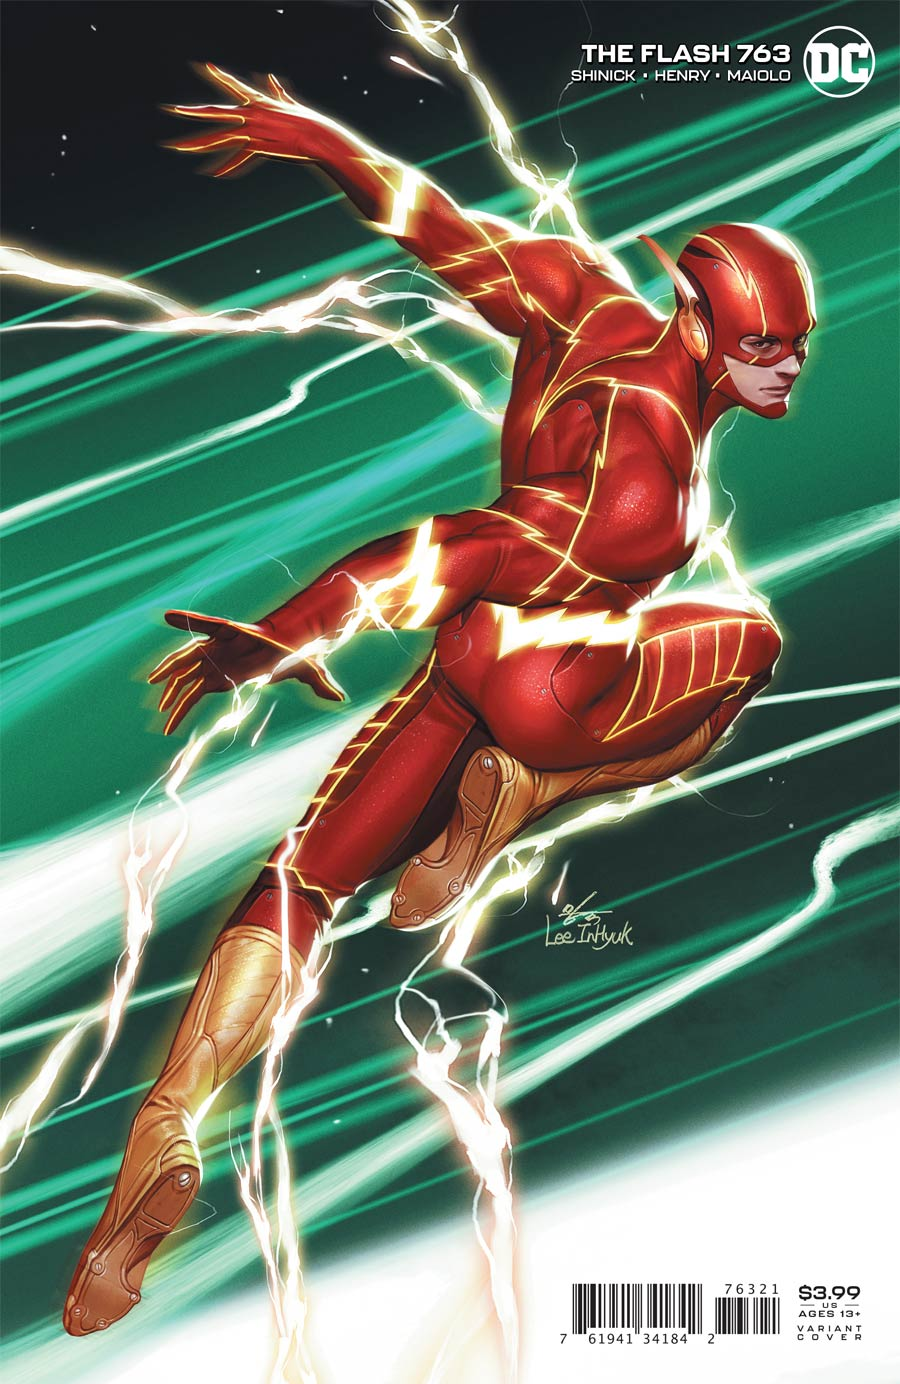 Flash Vol 5 #763 Cover B Variant Inhyuk Lee Cover